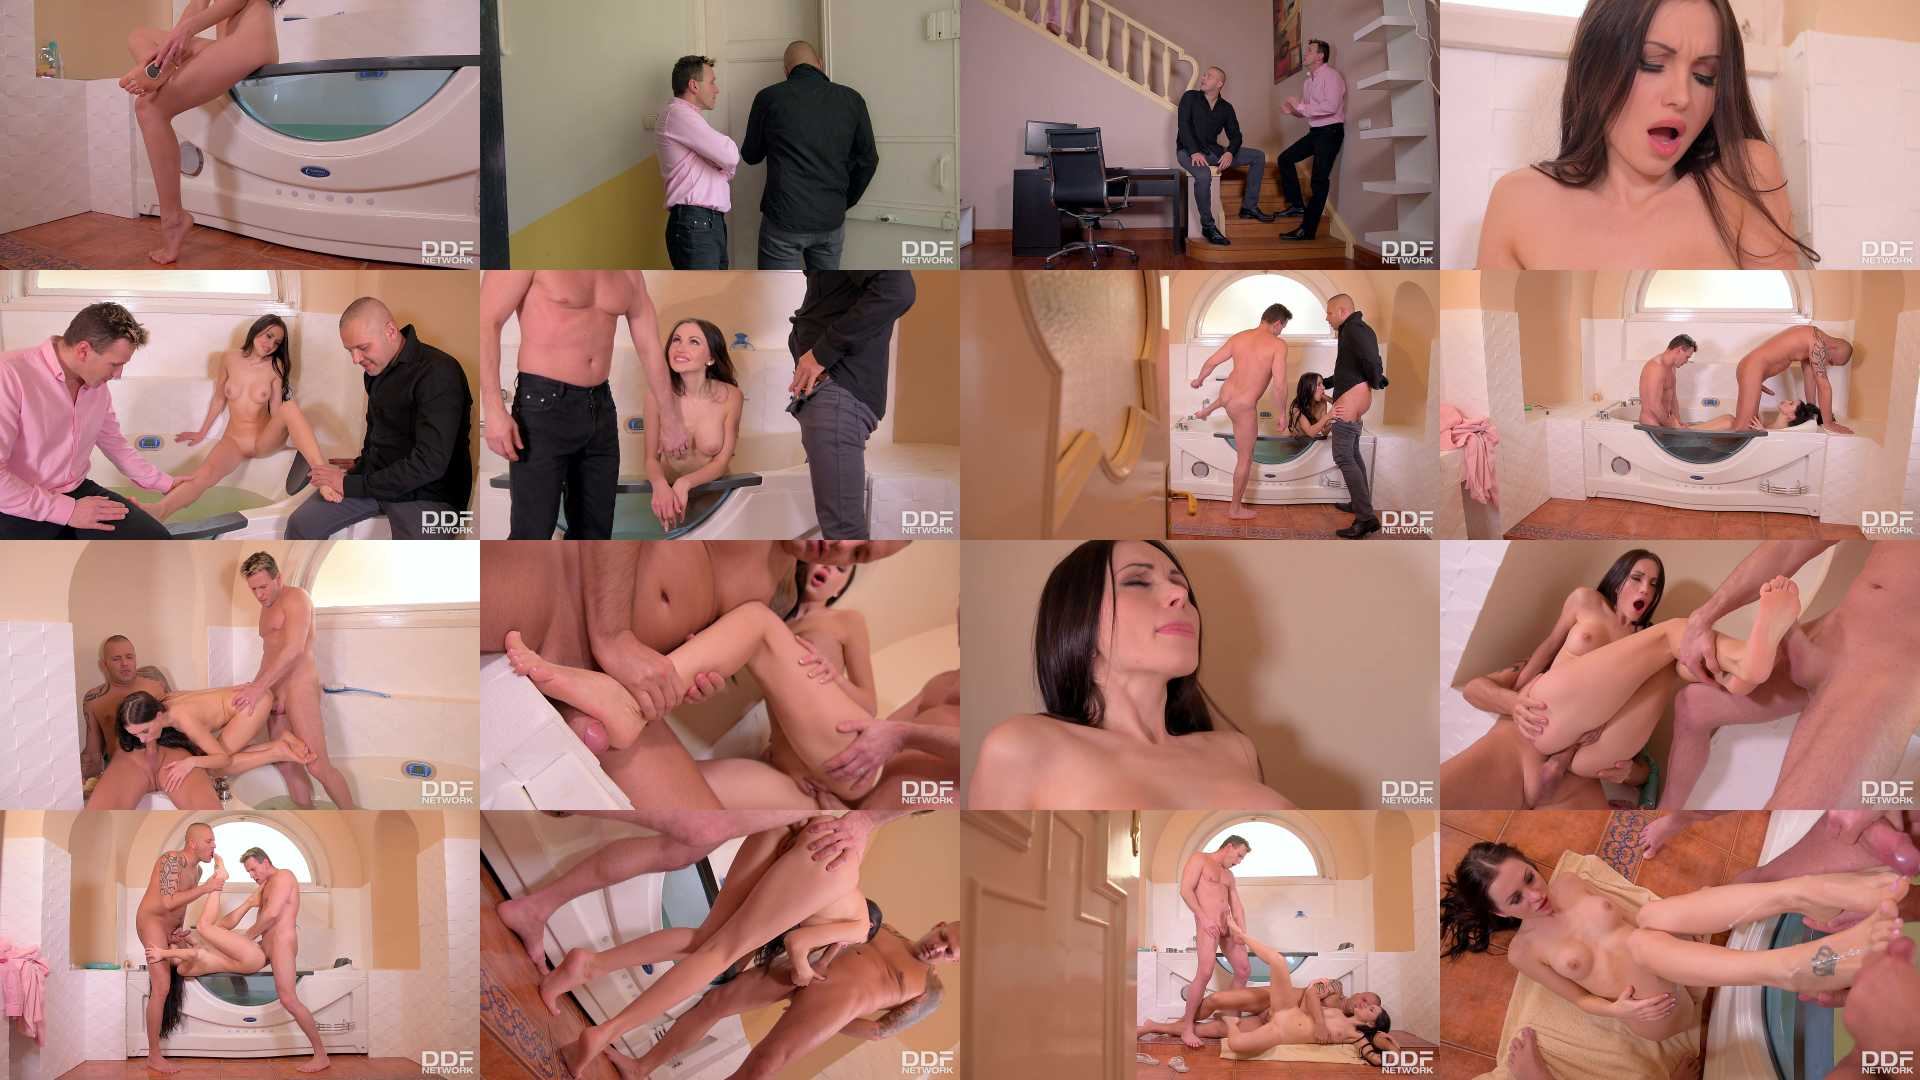 Sasha Rose in Bathroom Threesome: Russian Babe Gets Her Sexy Toes Sucked